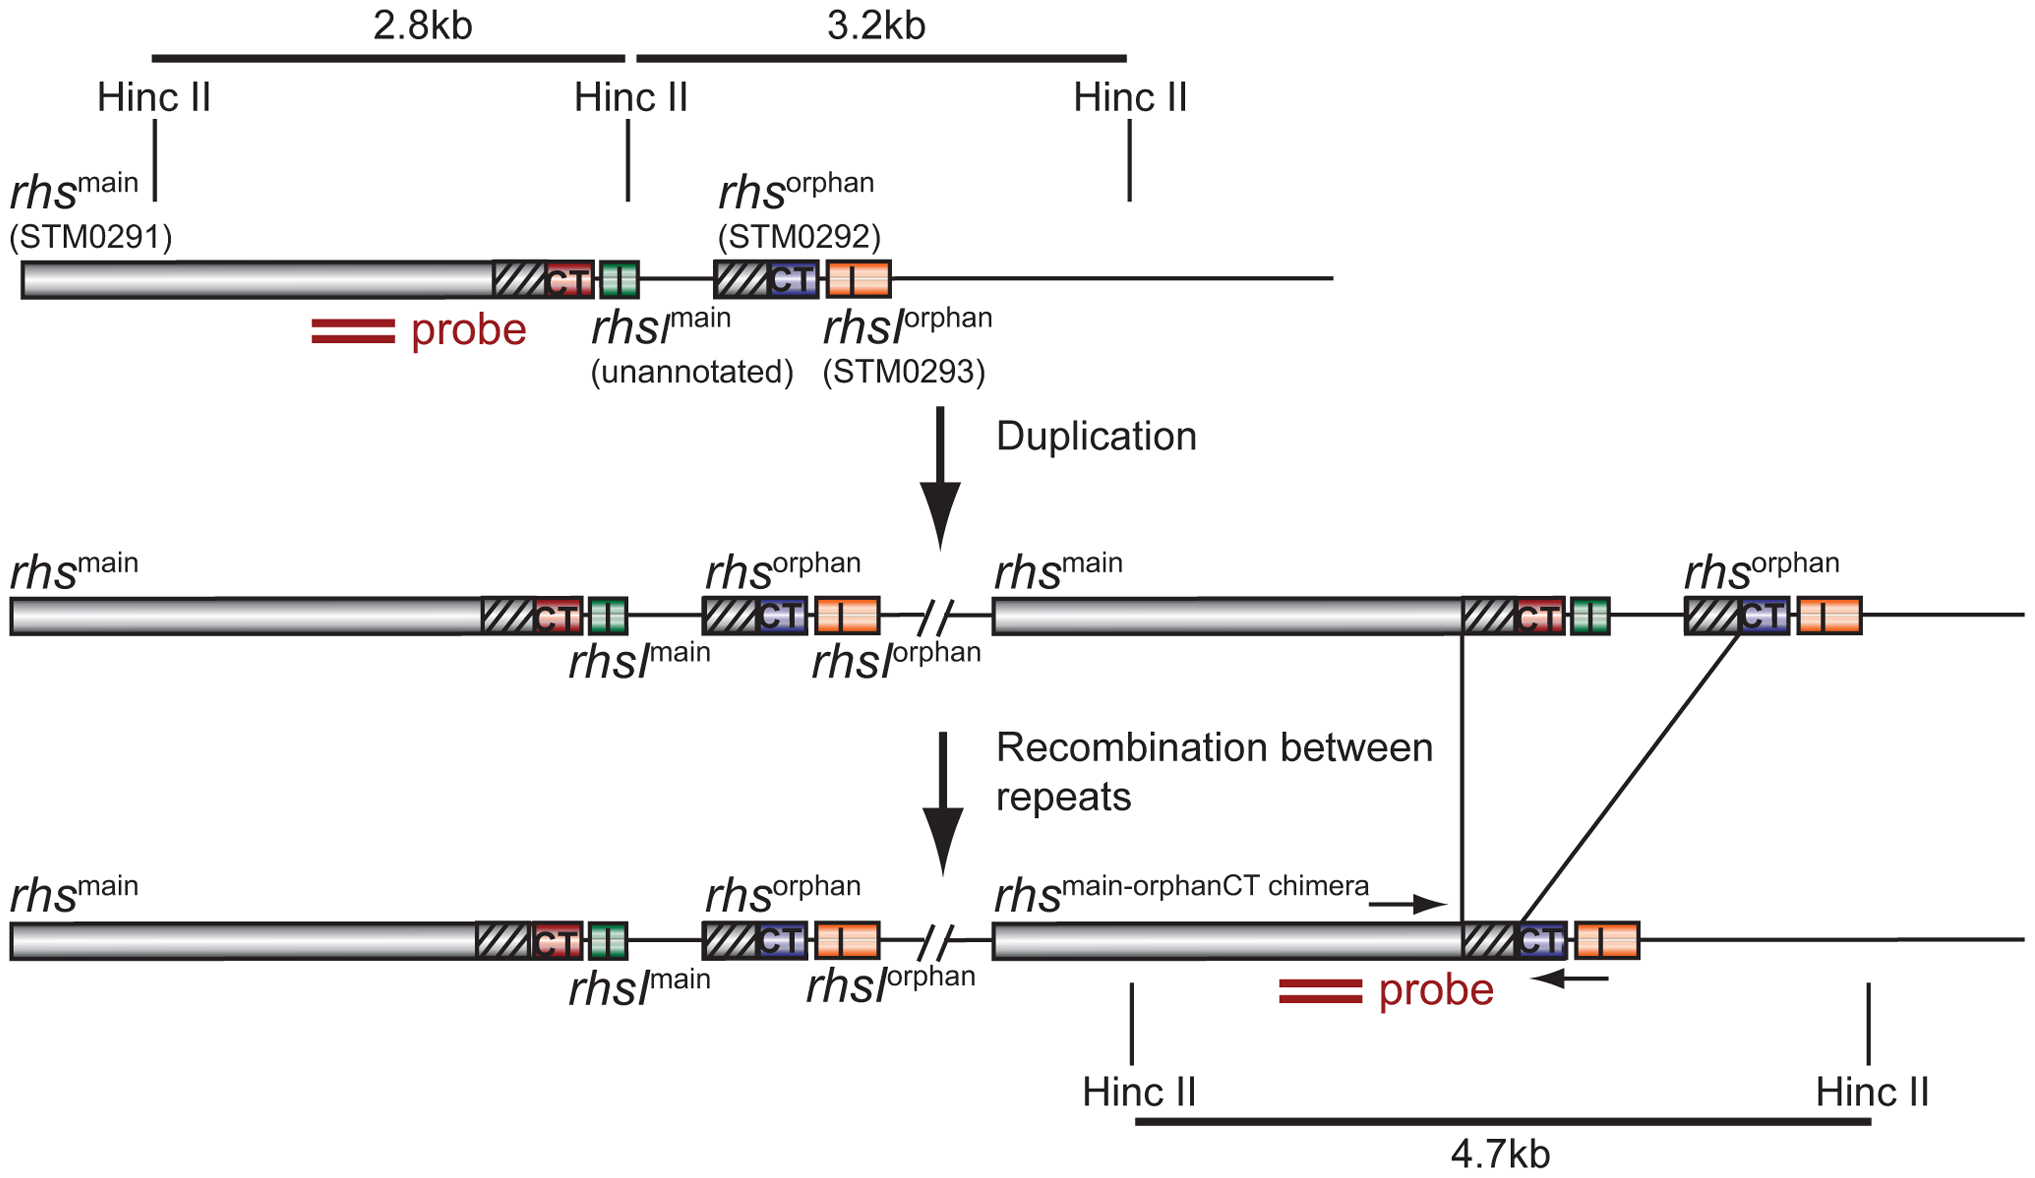 Proposed mechanism of <i>rhs</i> locus rearrangement in evolved inhibitor cells.